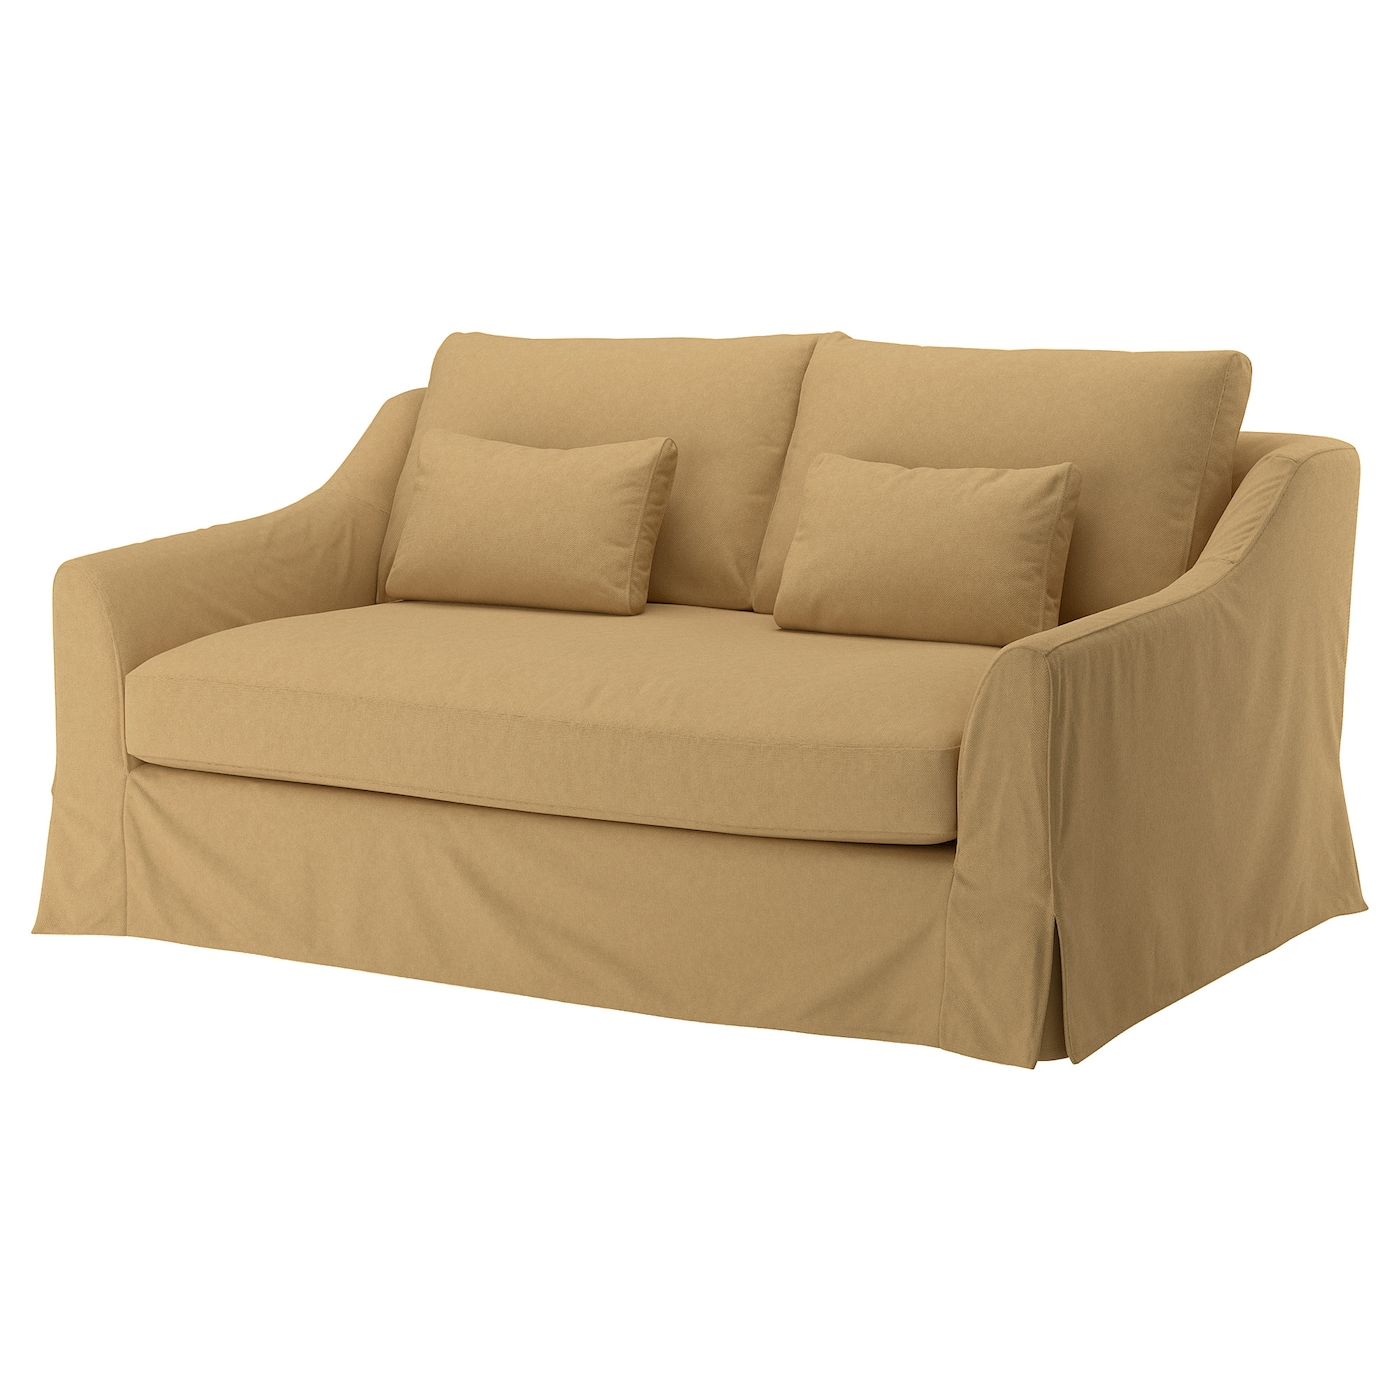 Ikea FÄrlÖv Cover For 2 Seat Sofa